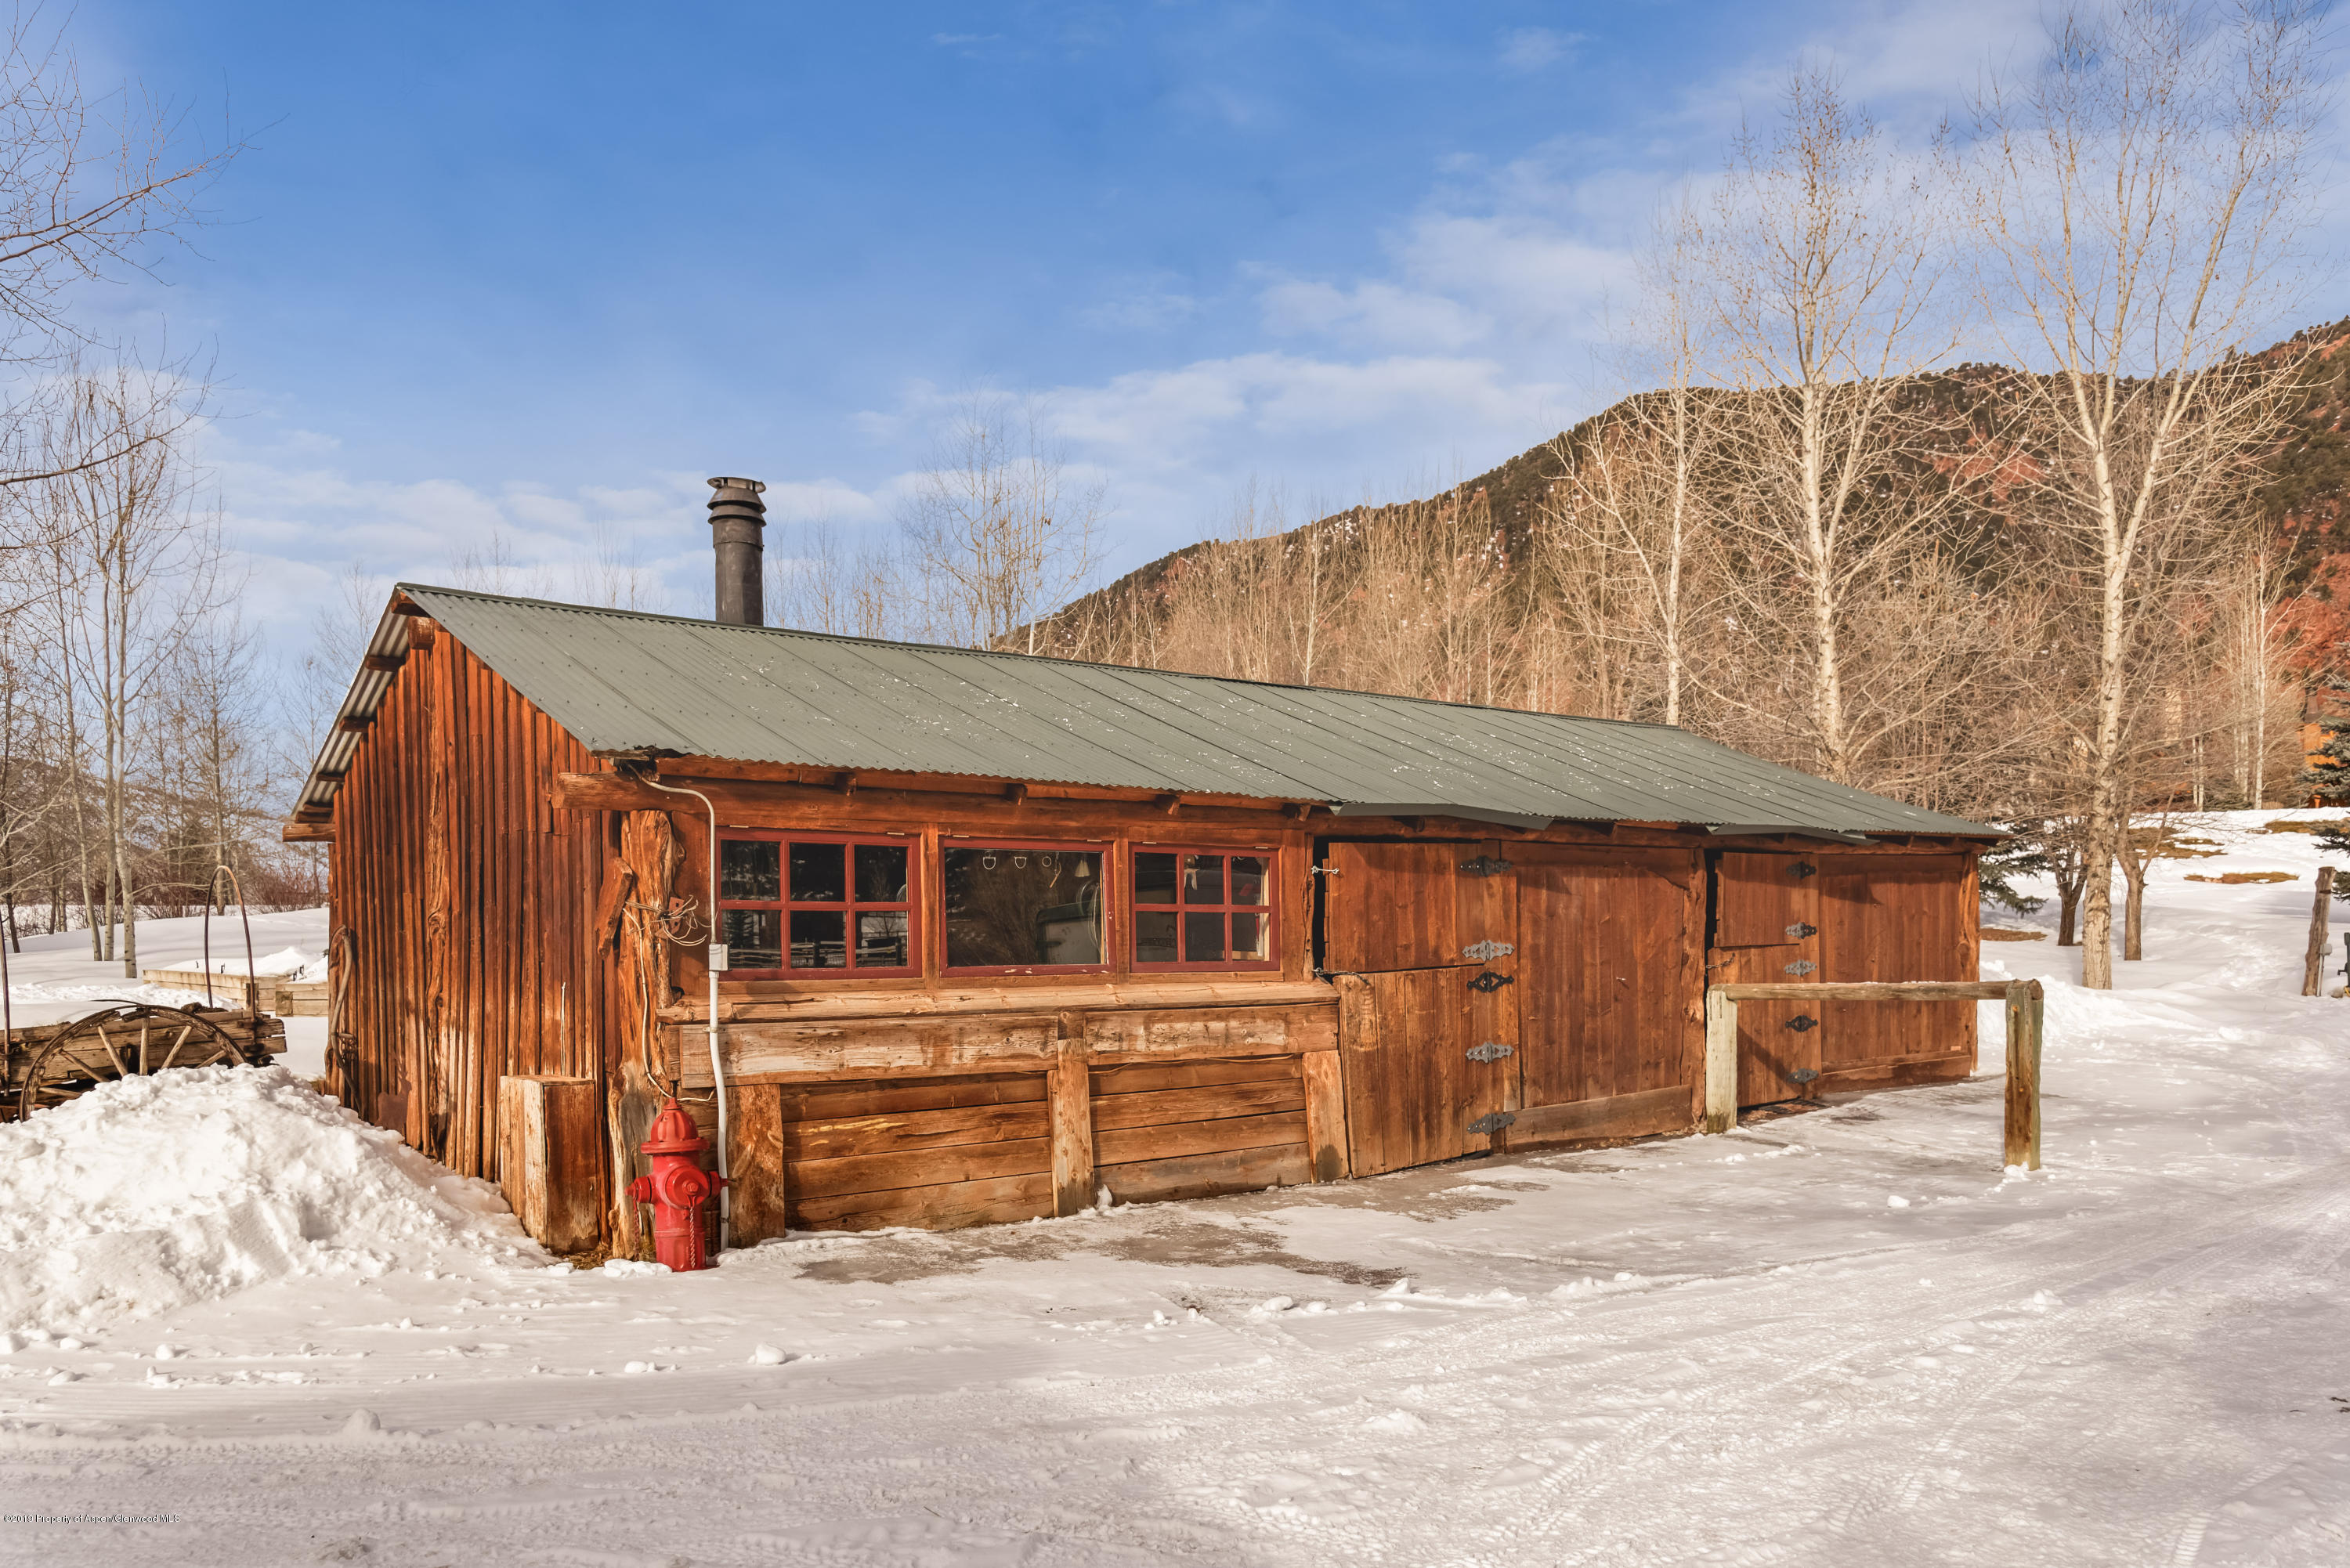 MLS# 135595 - 75 - 50 E River Ranch Road, Snowmass, CO 81654